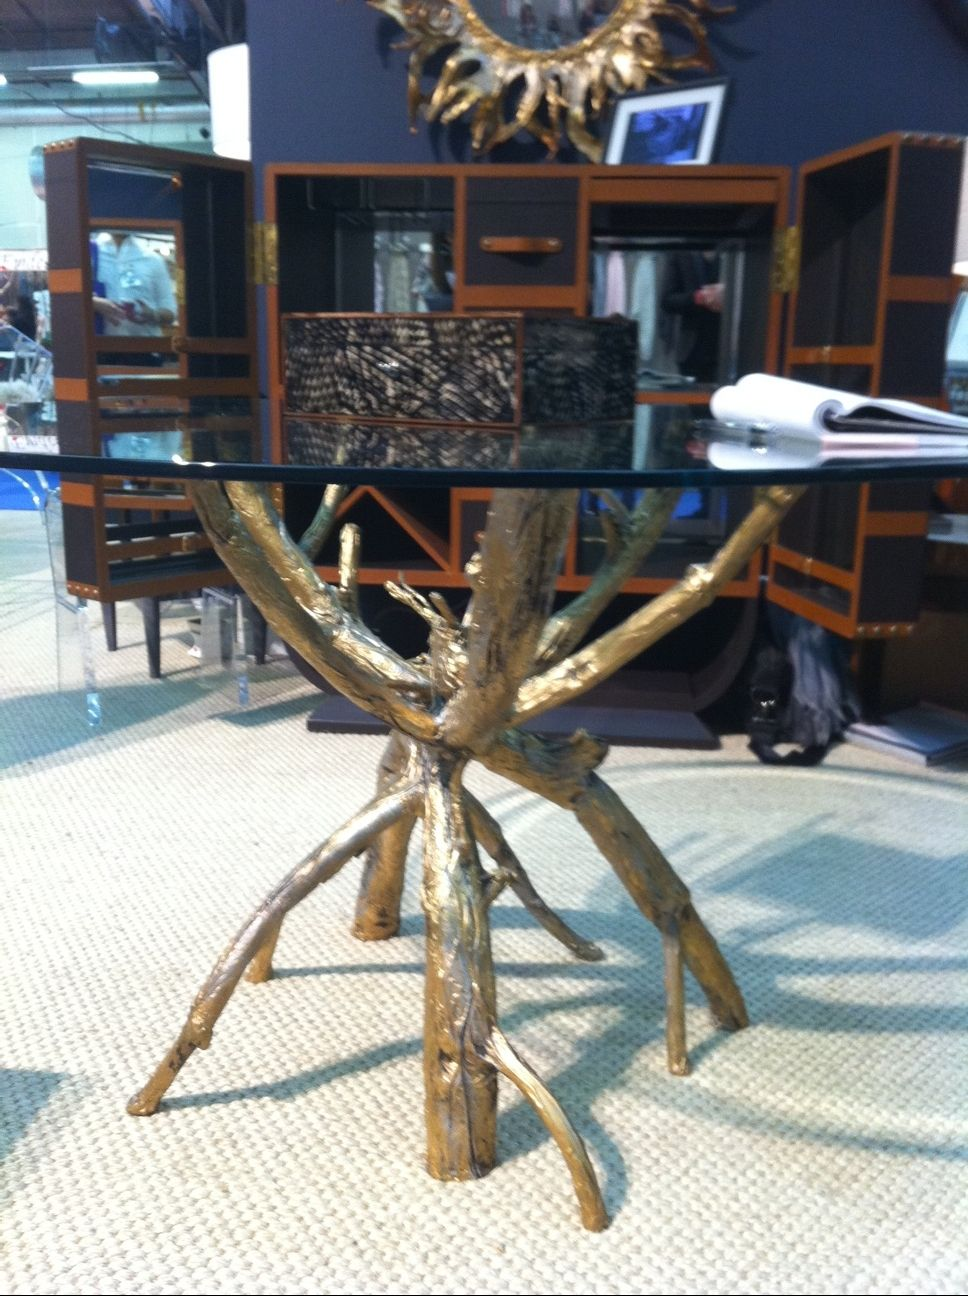 Rustic Tree / Tree Branch Coffee Table With Glass Top. | Home Decor Desires  Wish List | Pinterest